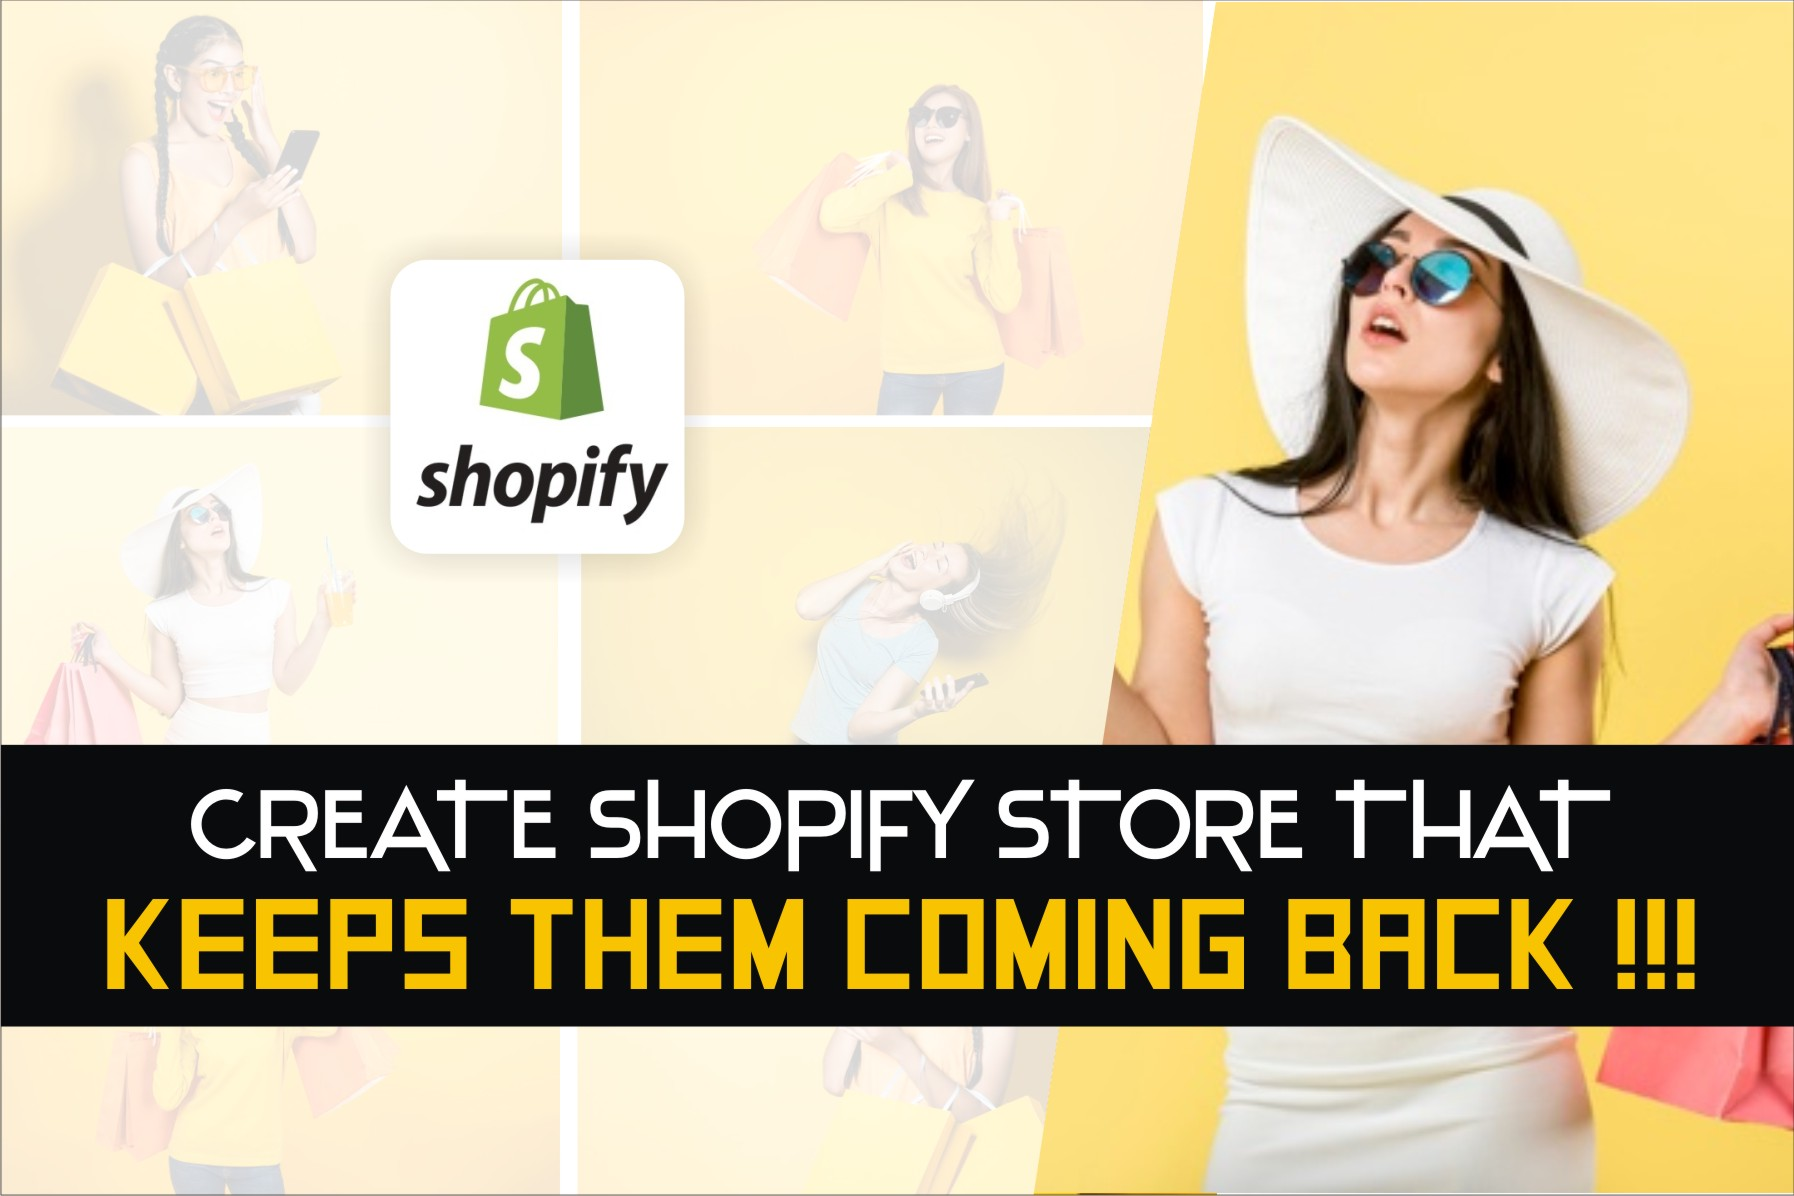 I will shopify website, shopify store, shopify dropshipping store or shopify expert, FiverrBox